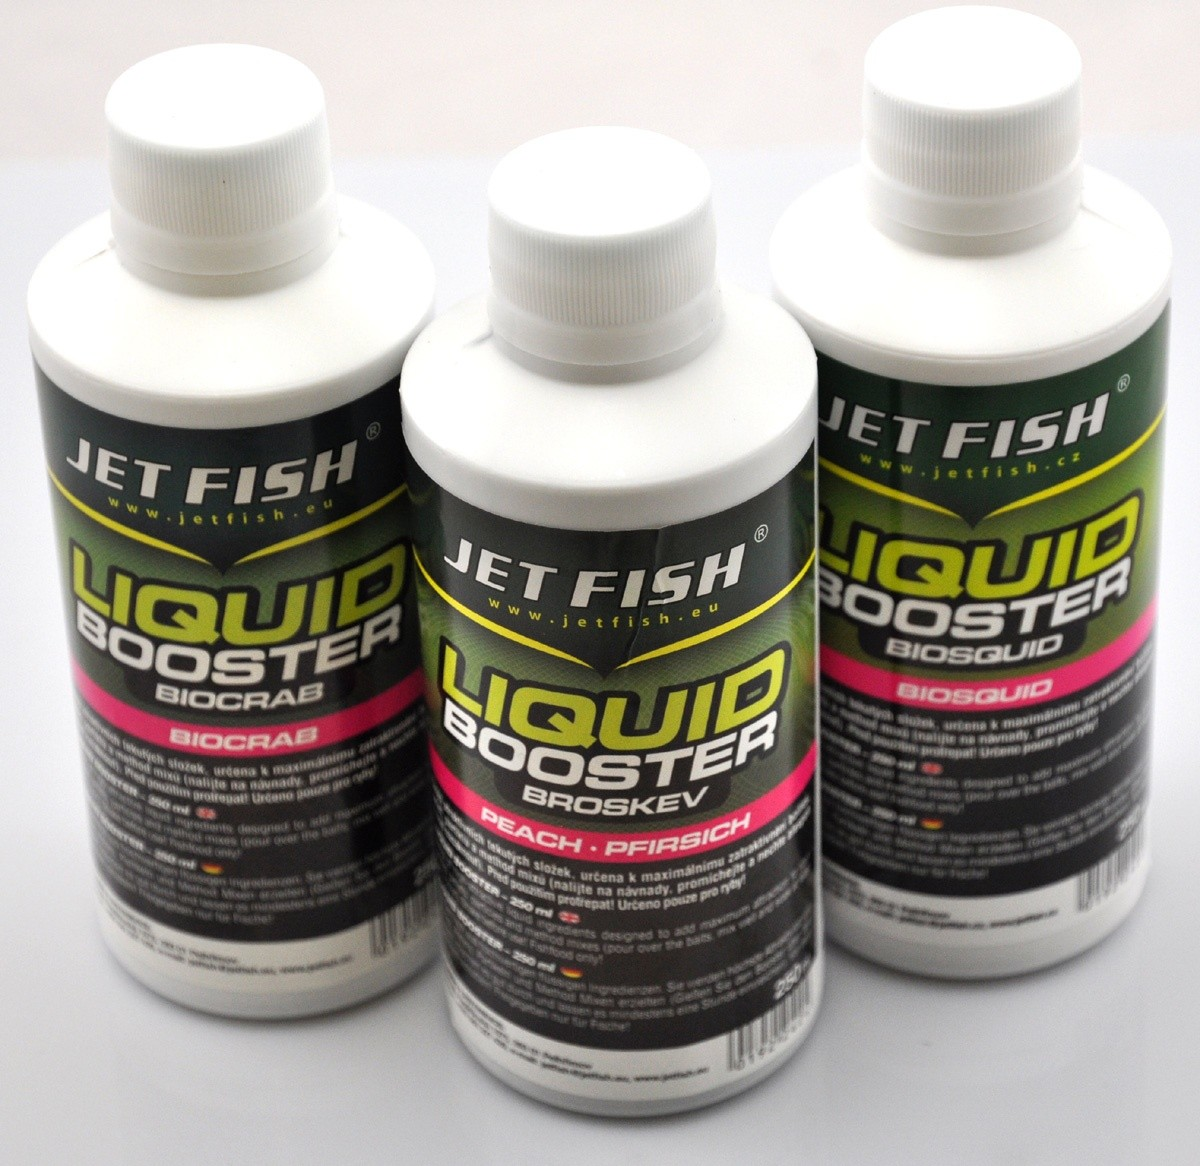 JET FISH LIQUID booster 250 ml